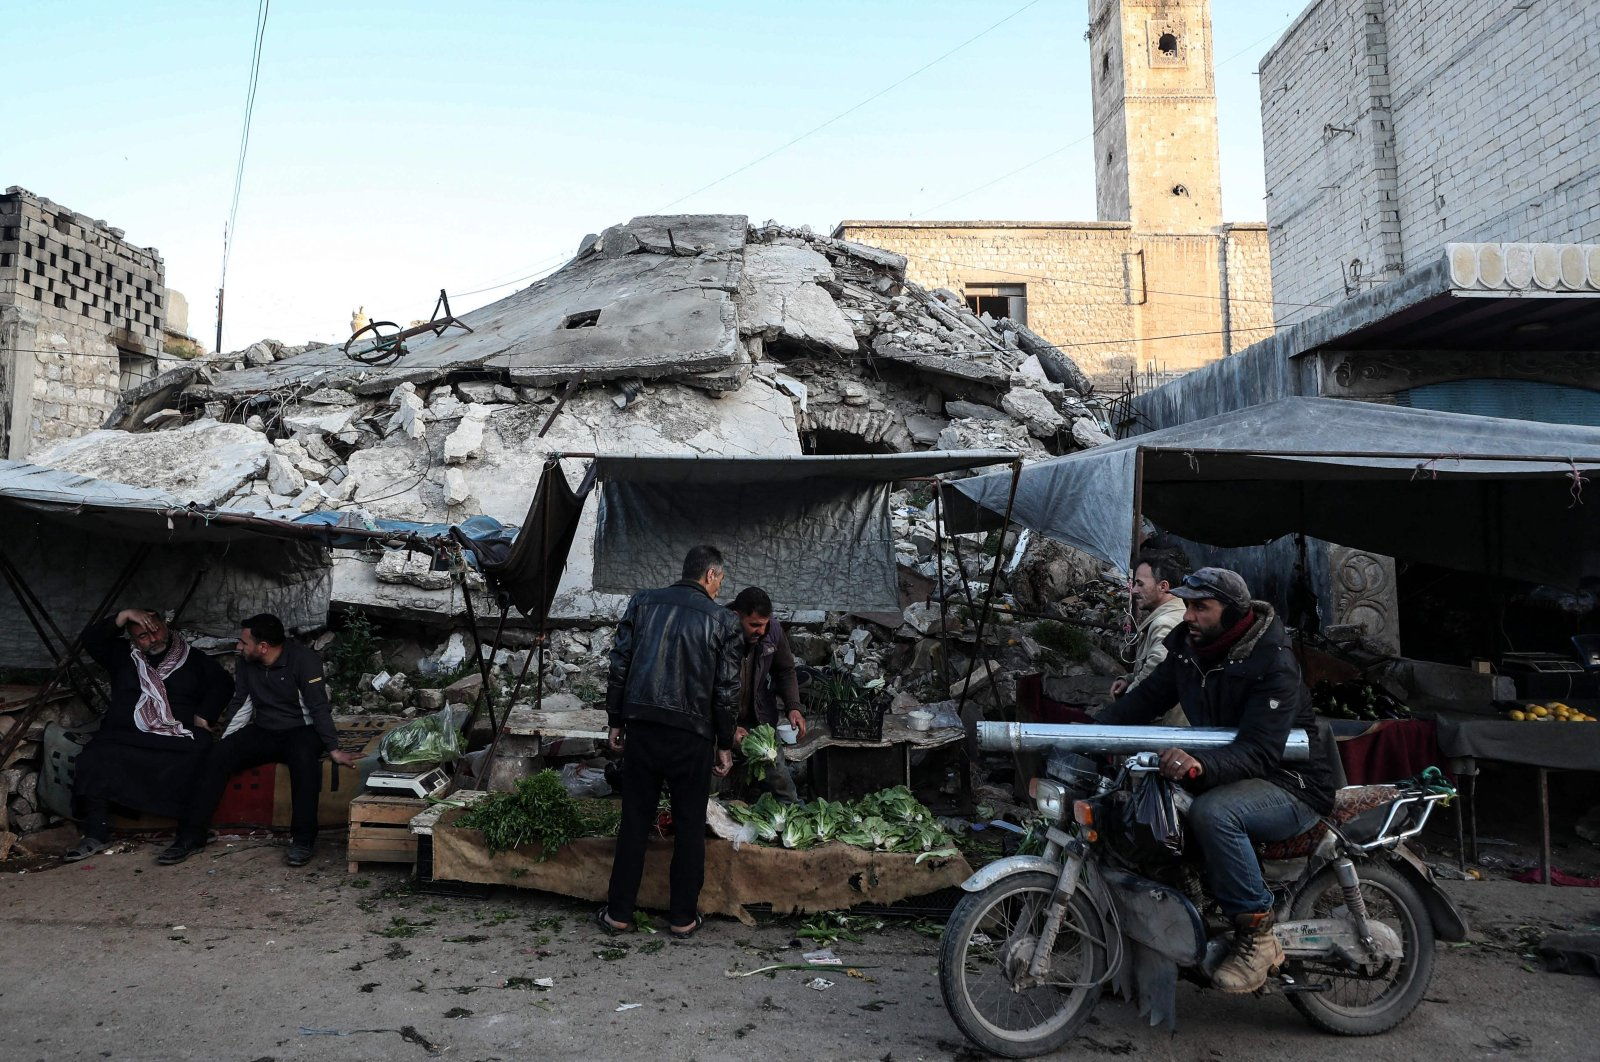 Syrians buy food products at a market ahead of iftar, the evening meal that ends the daily fast at sunset, on the second day of Ramadan, in the war-ravaged city of Ariha, located near the strategic M4 highway, in the southern countryside of the Idlib province, Syria, April 15, 2021. (AFP Photo)